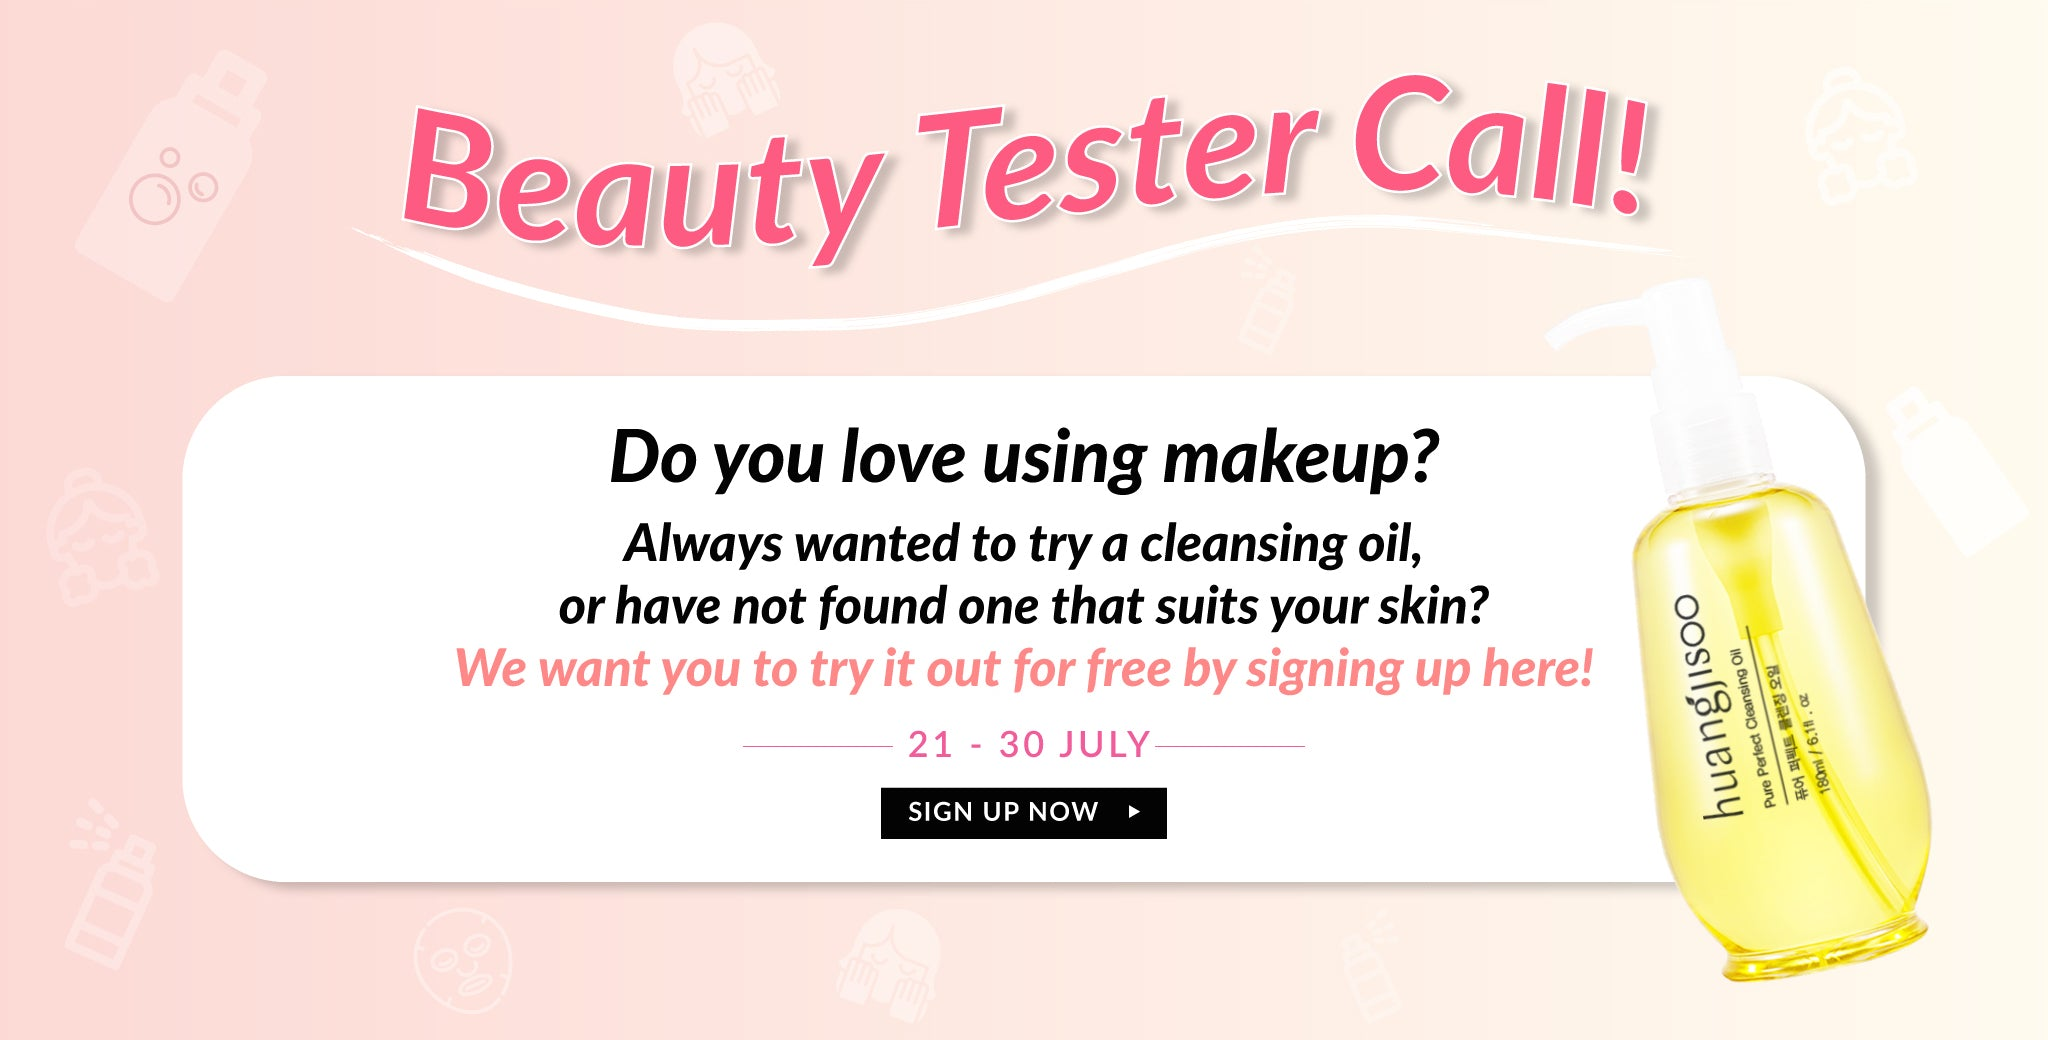 Calling For Beauty Testers